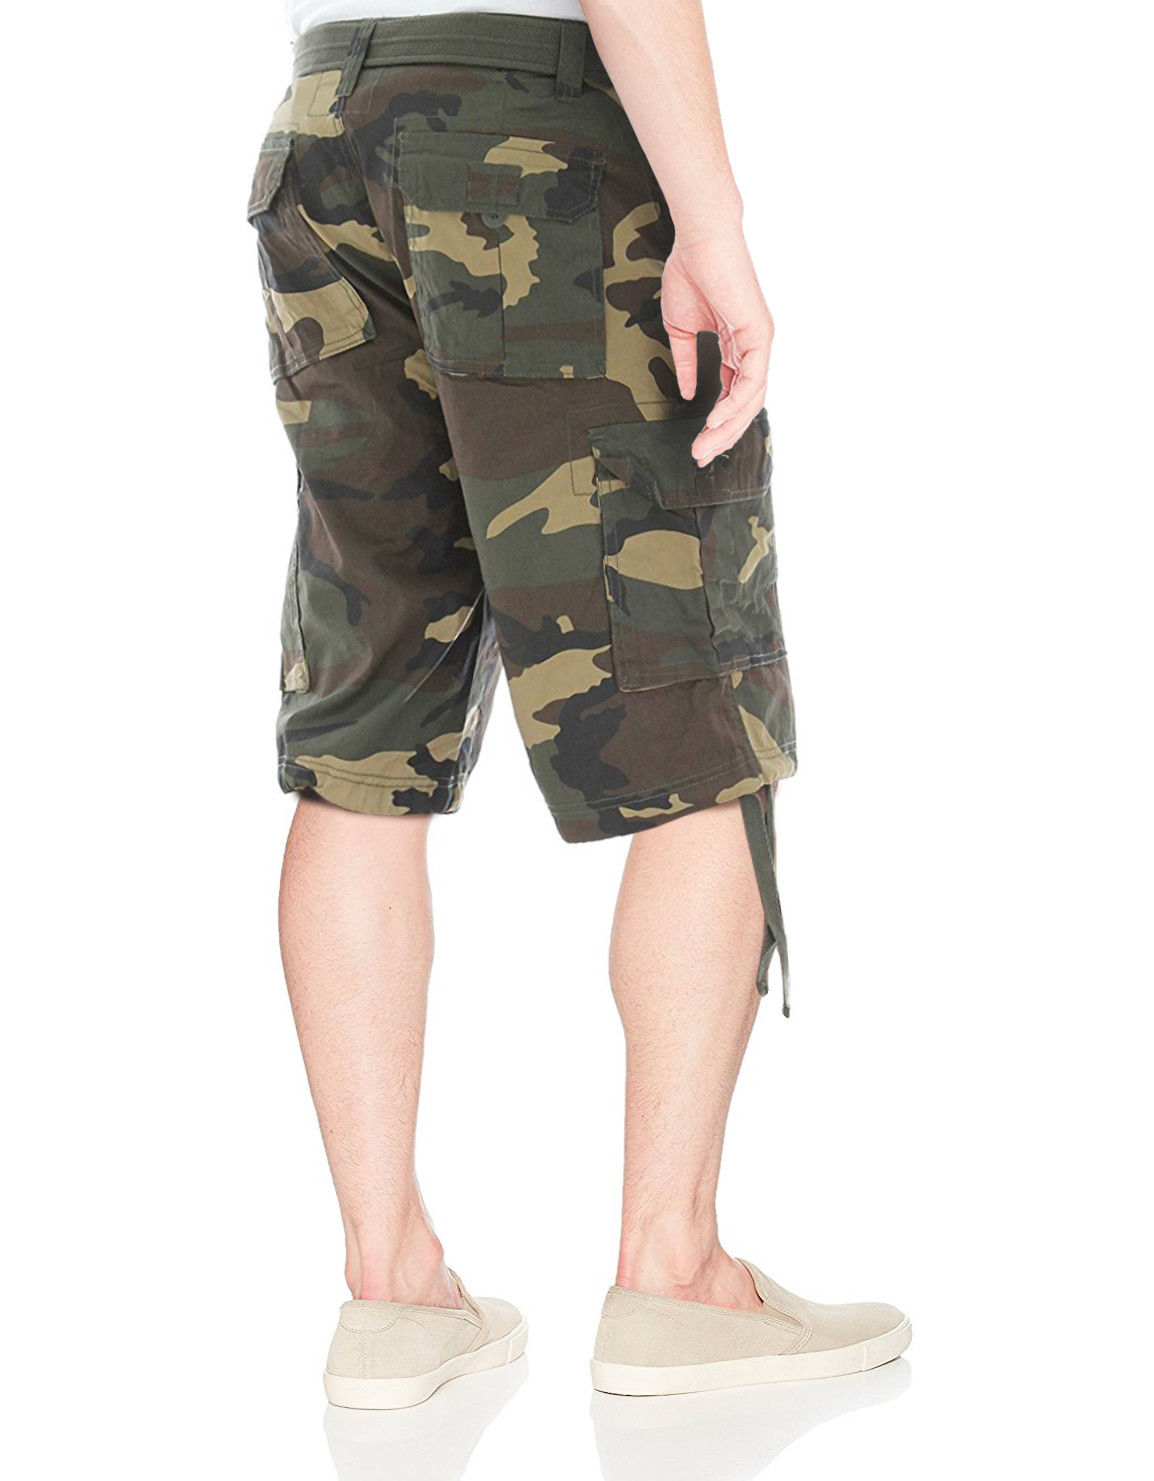 Men-039-s-Tactical-Combat-Military-Army-Cotton-Twill-Camo-Cargo-Shorts-With-Belt thumbnail 10